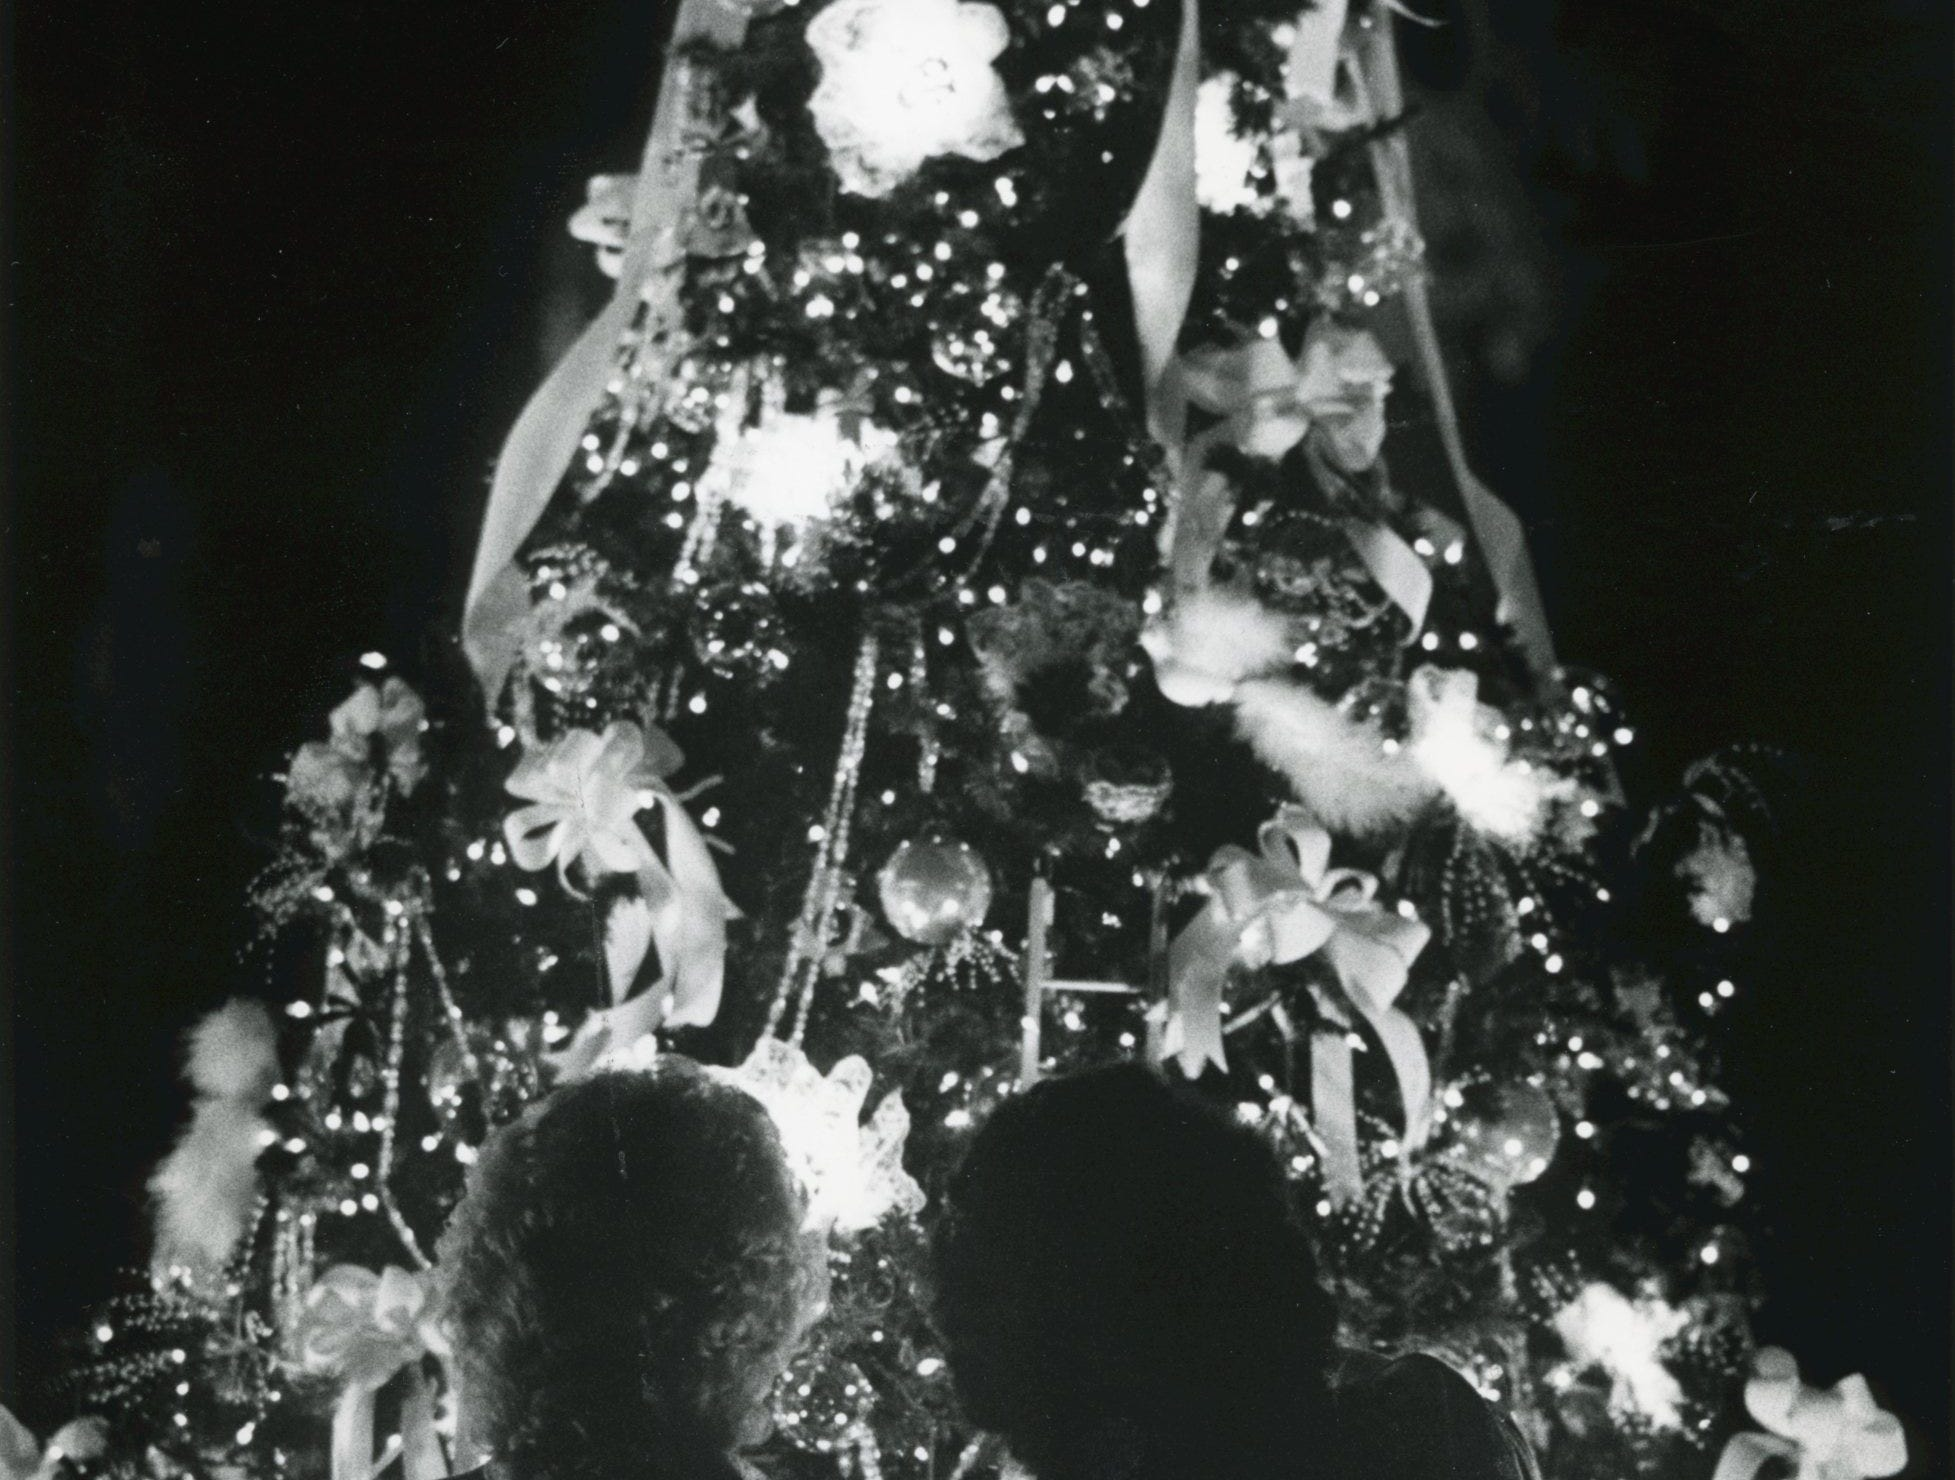 Trula Berry and Anita Hall admire one of the many ornamented and lighted trees at the annual Fantasy of Trees, November 1988.